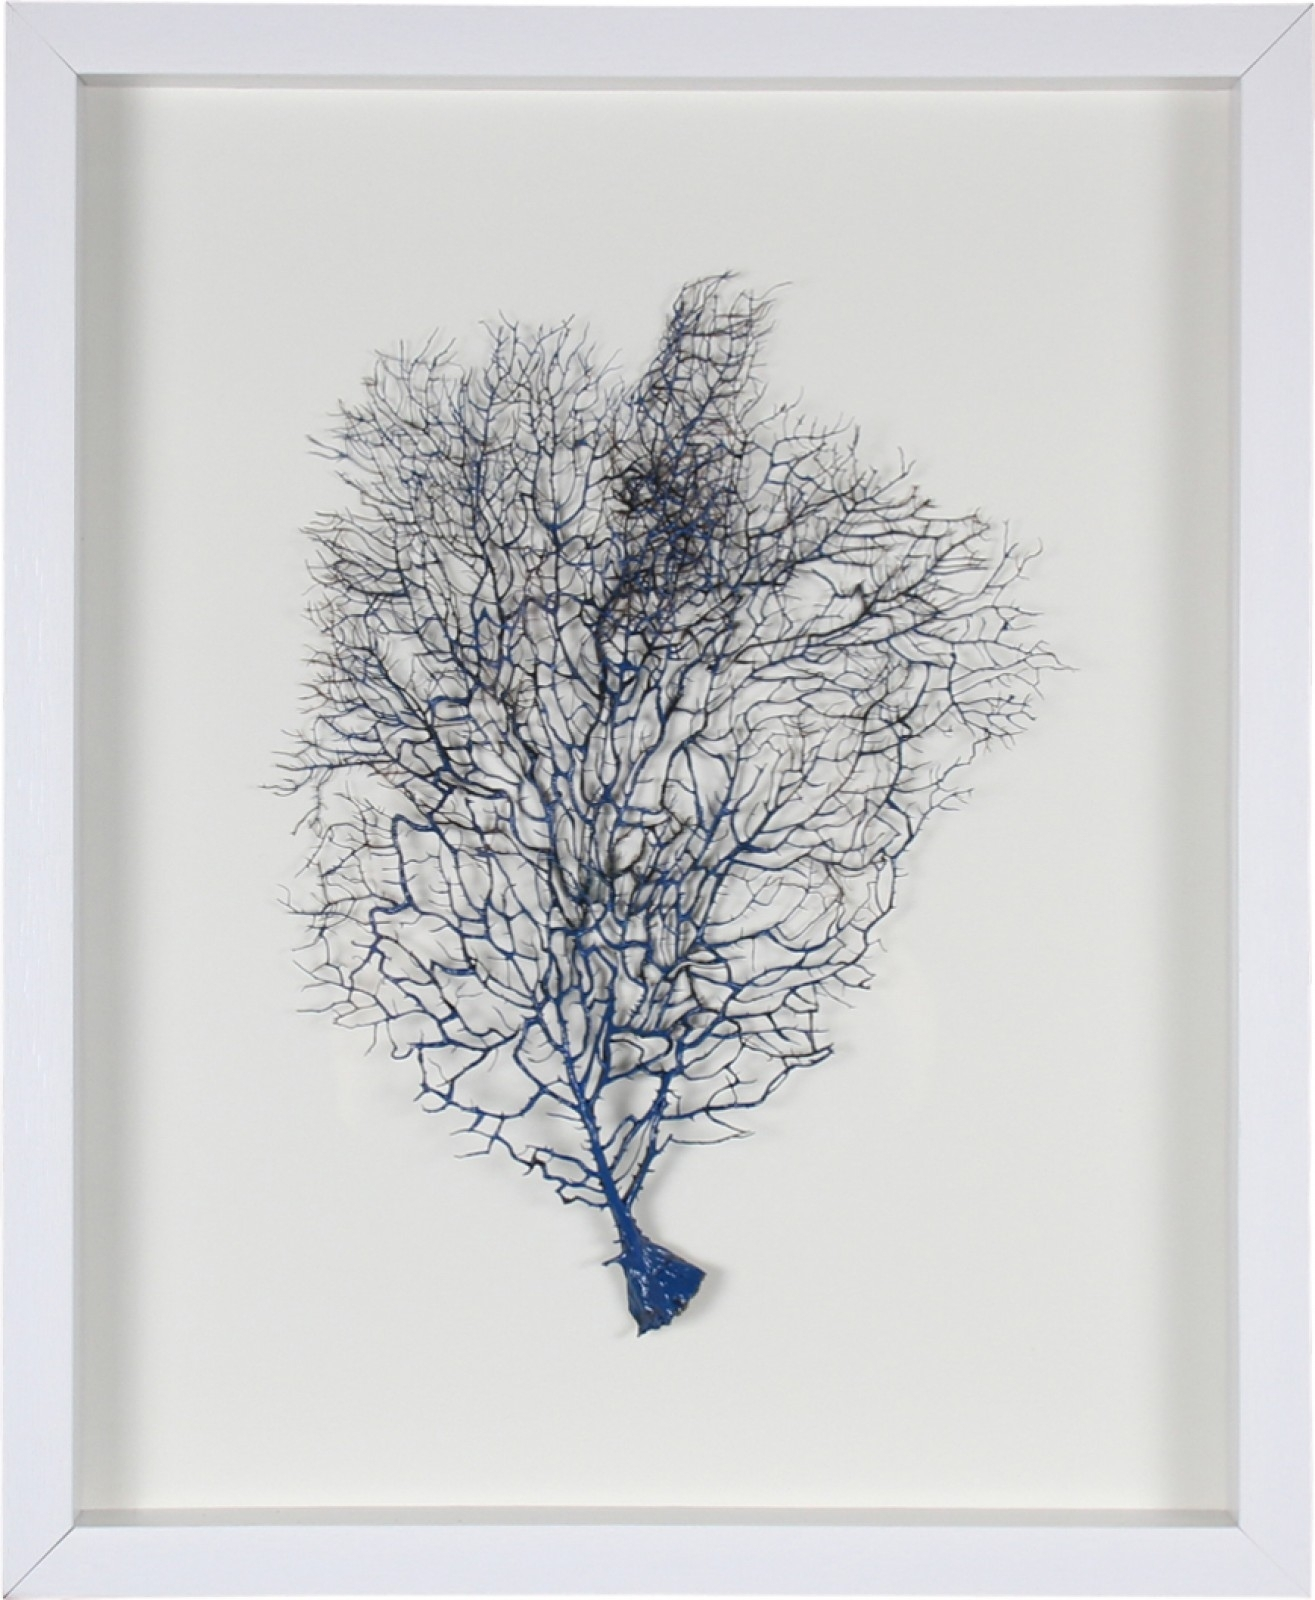 Framed Coral Wall Art Navy | Wholesale Homewares And Giftware Throughout Best And Newest Coral Wall Art (Gallery 15 of 20)